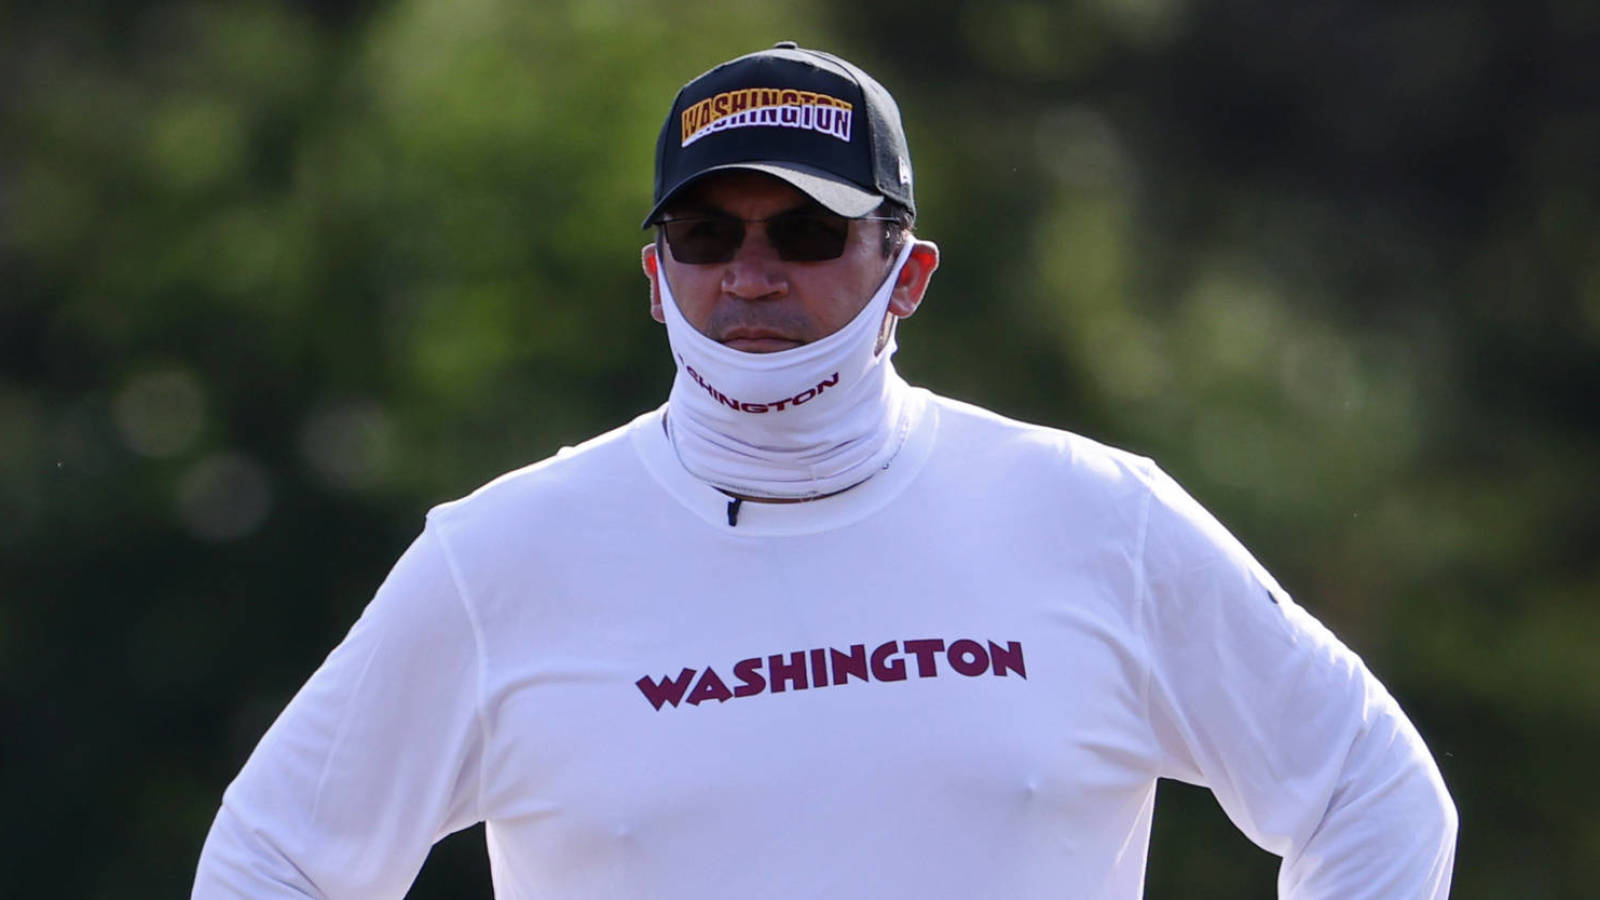 Washington shares awesome video from Ron Rivera's final cancer treatment